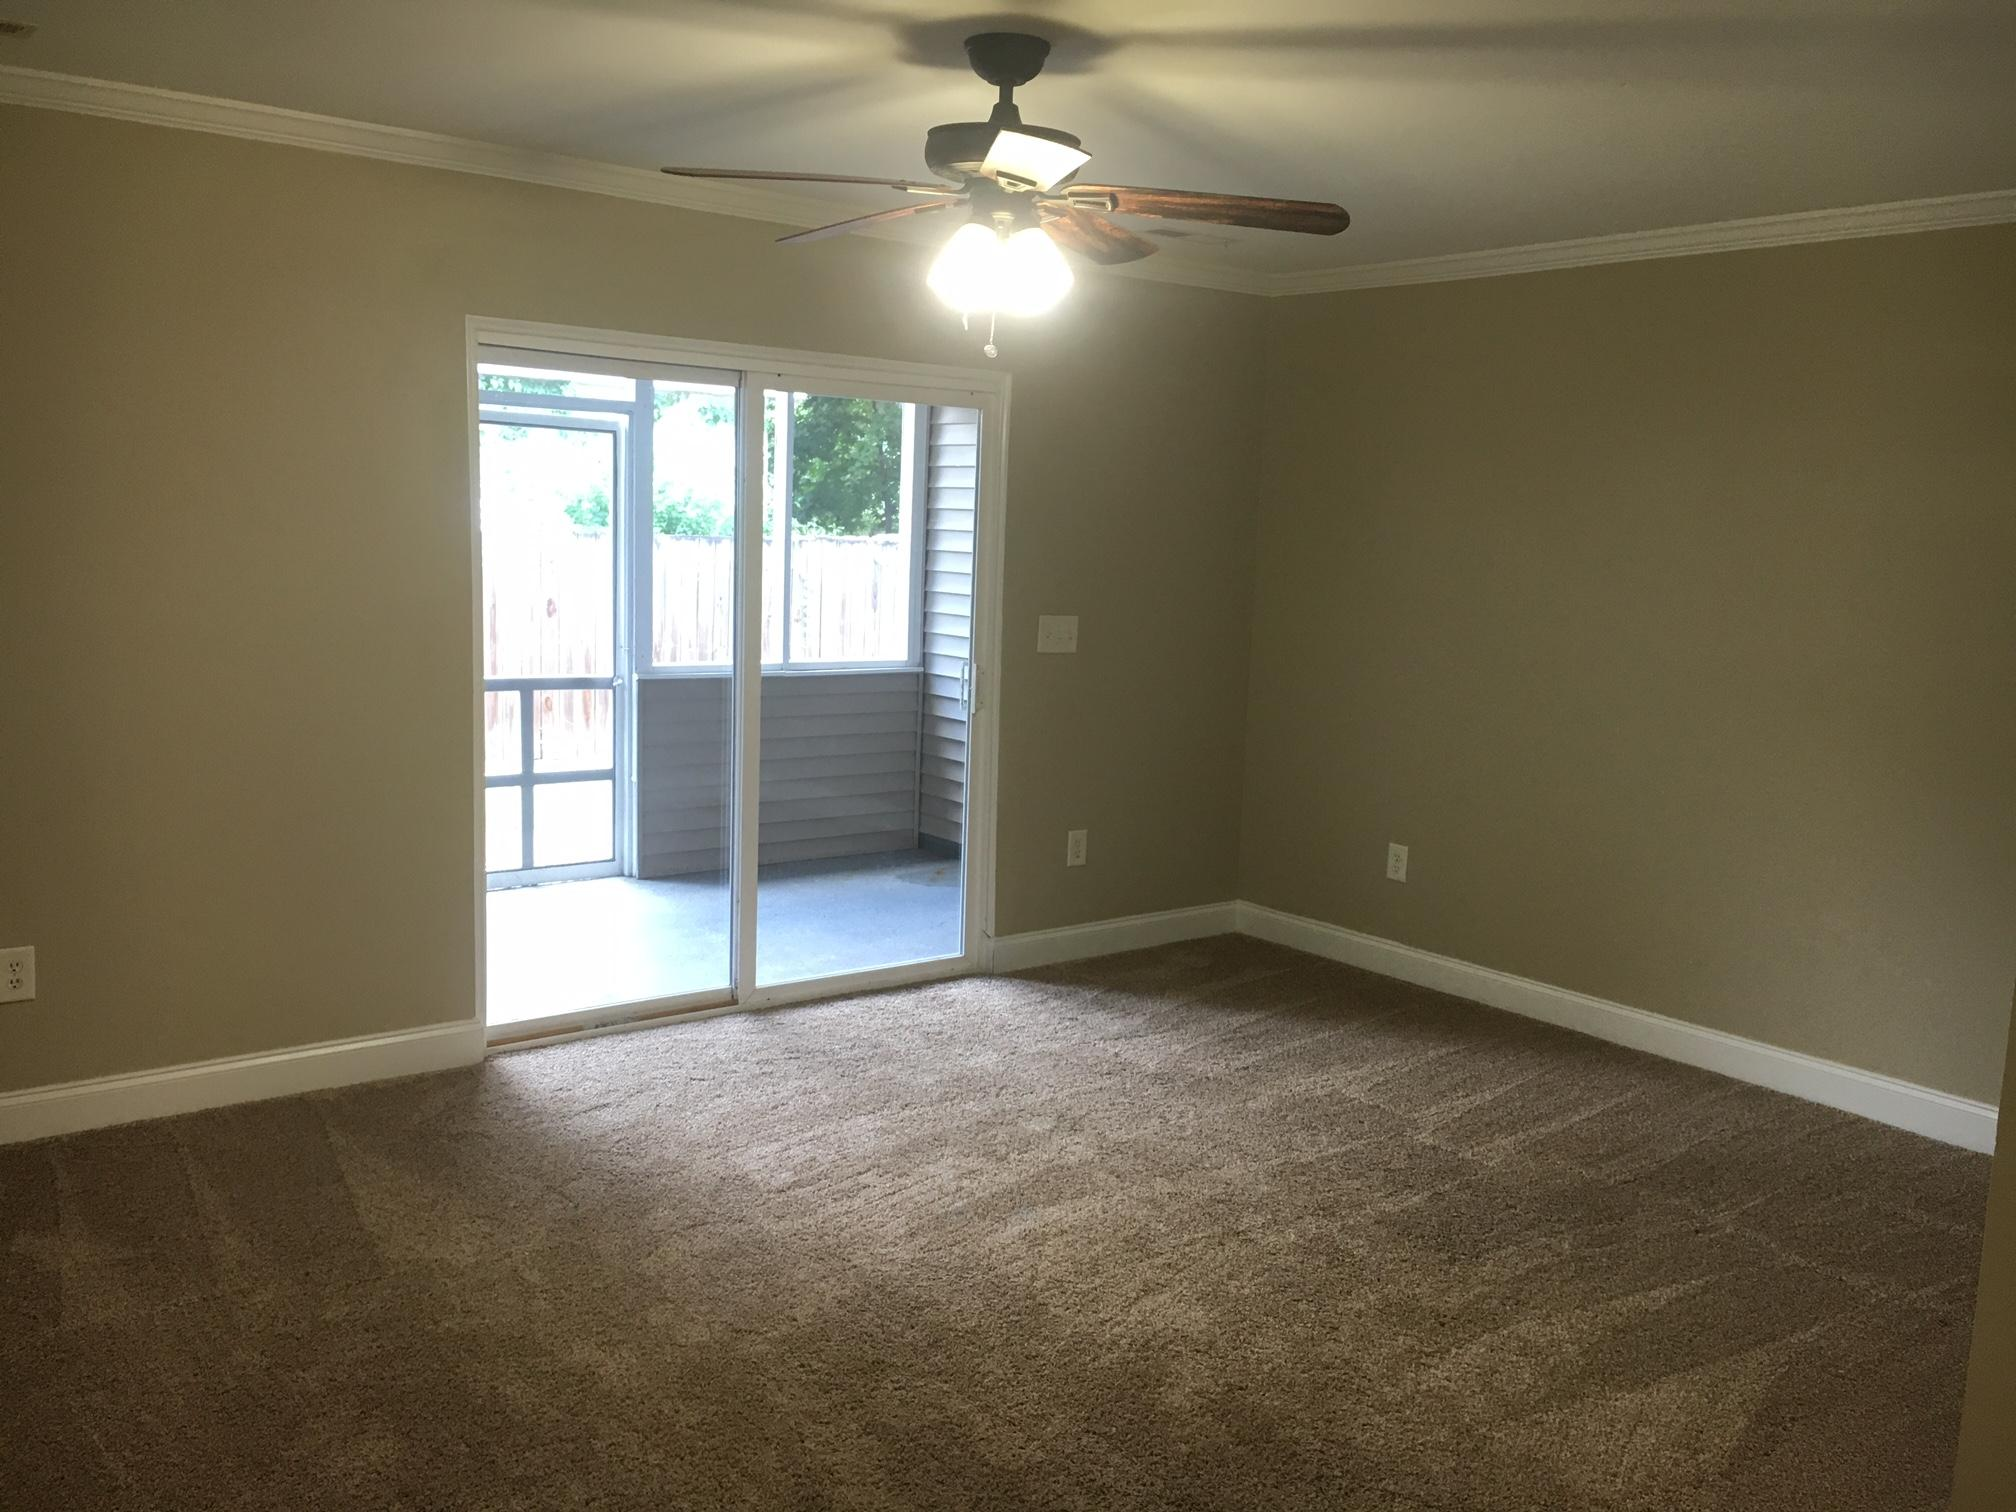 Avalon In The Pines Homes For Sale - 5910 Tampa, Hanahan, SC - 2